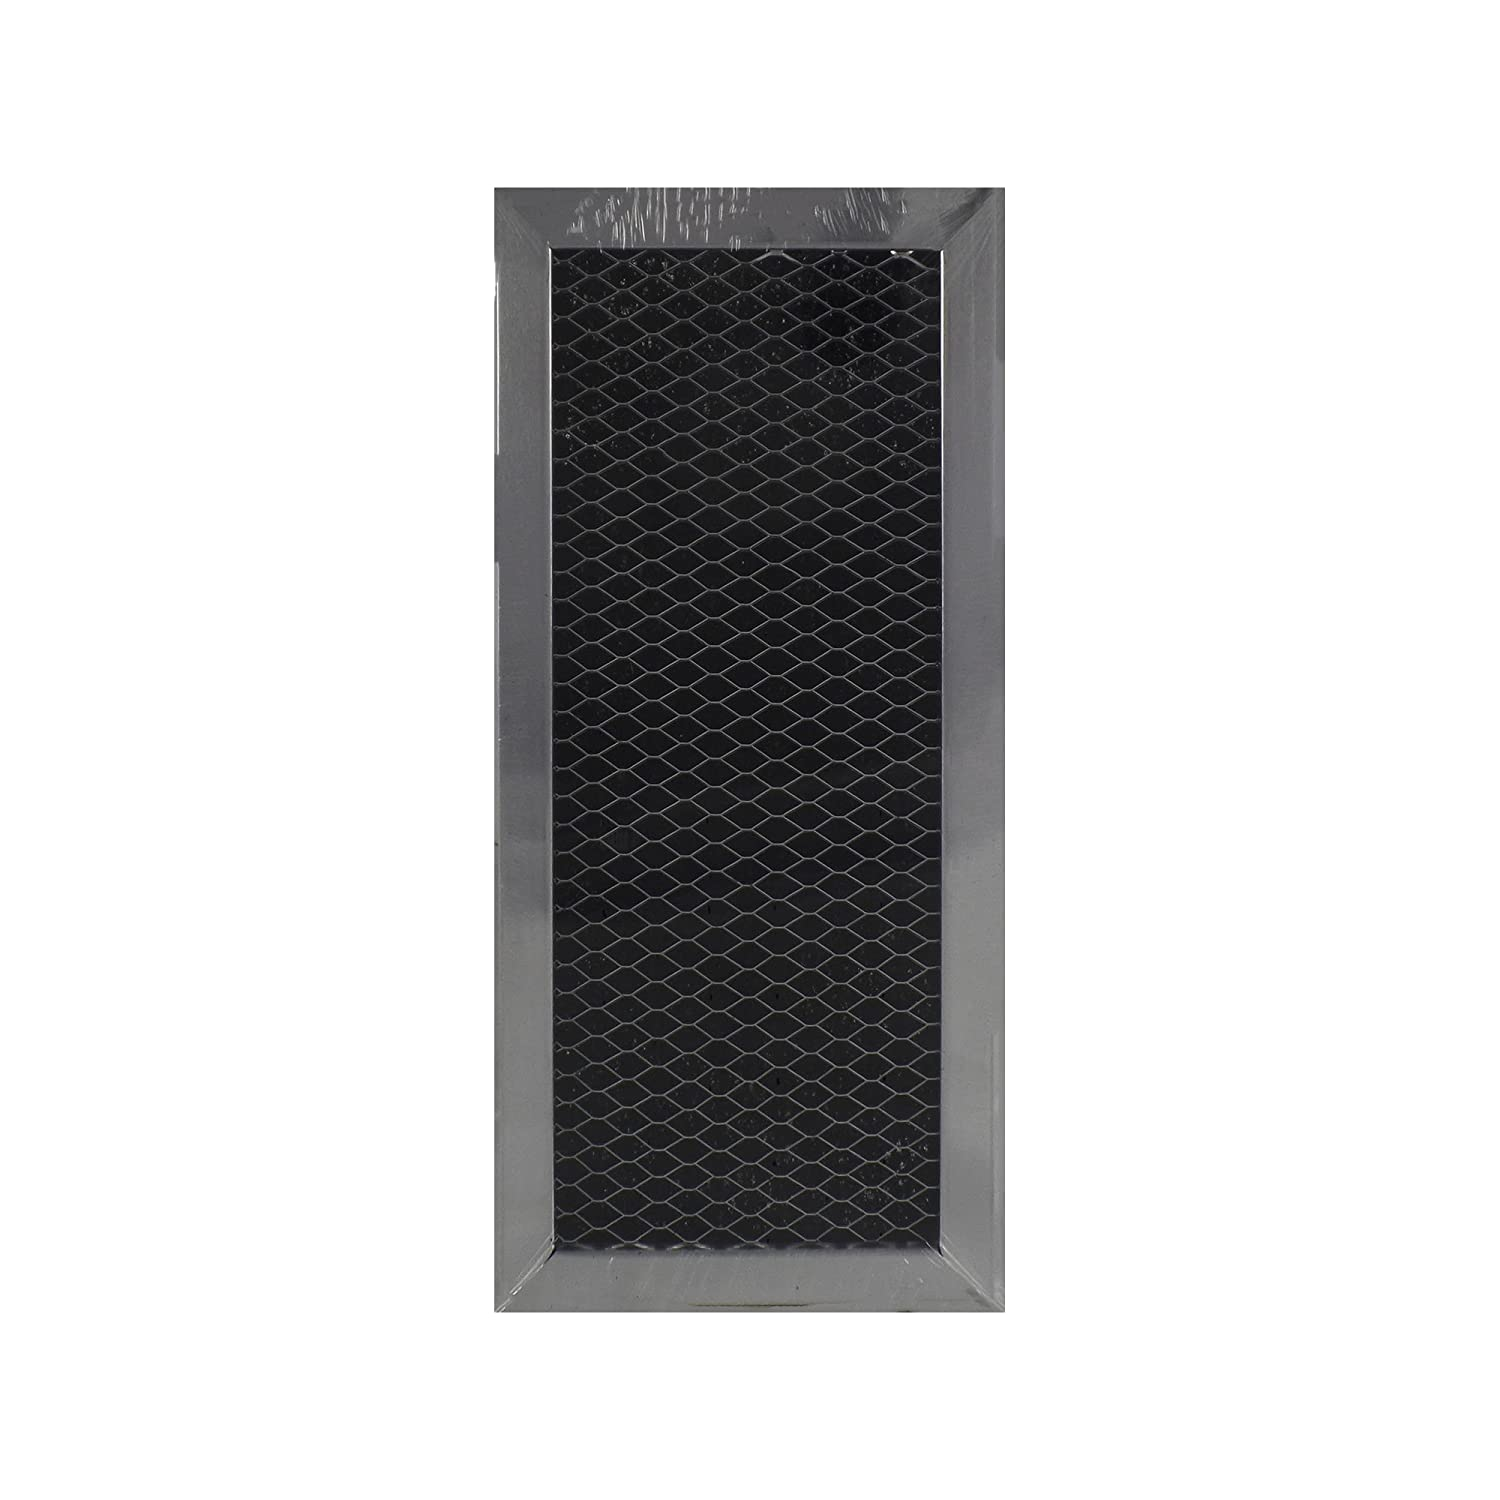 Air Filter Factory Compatible Replacement for Samsung DE63-00367D, DE63-00367H, DE63-30016D Charcoal Carbon Microwave Oven Filter 4